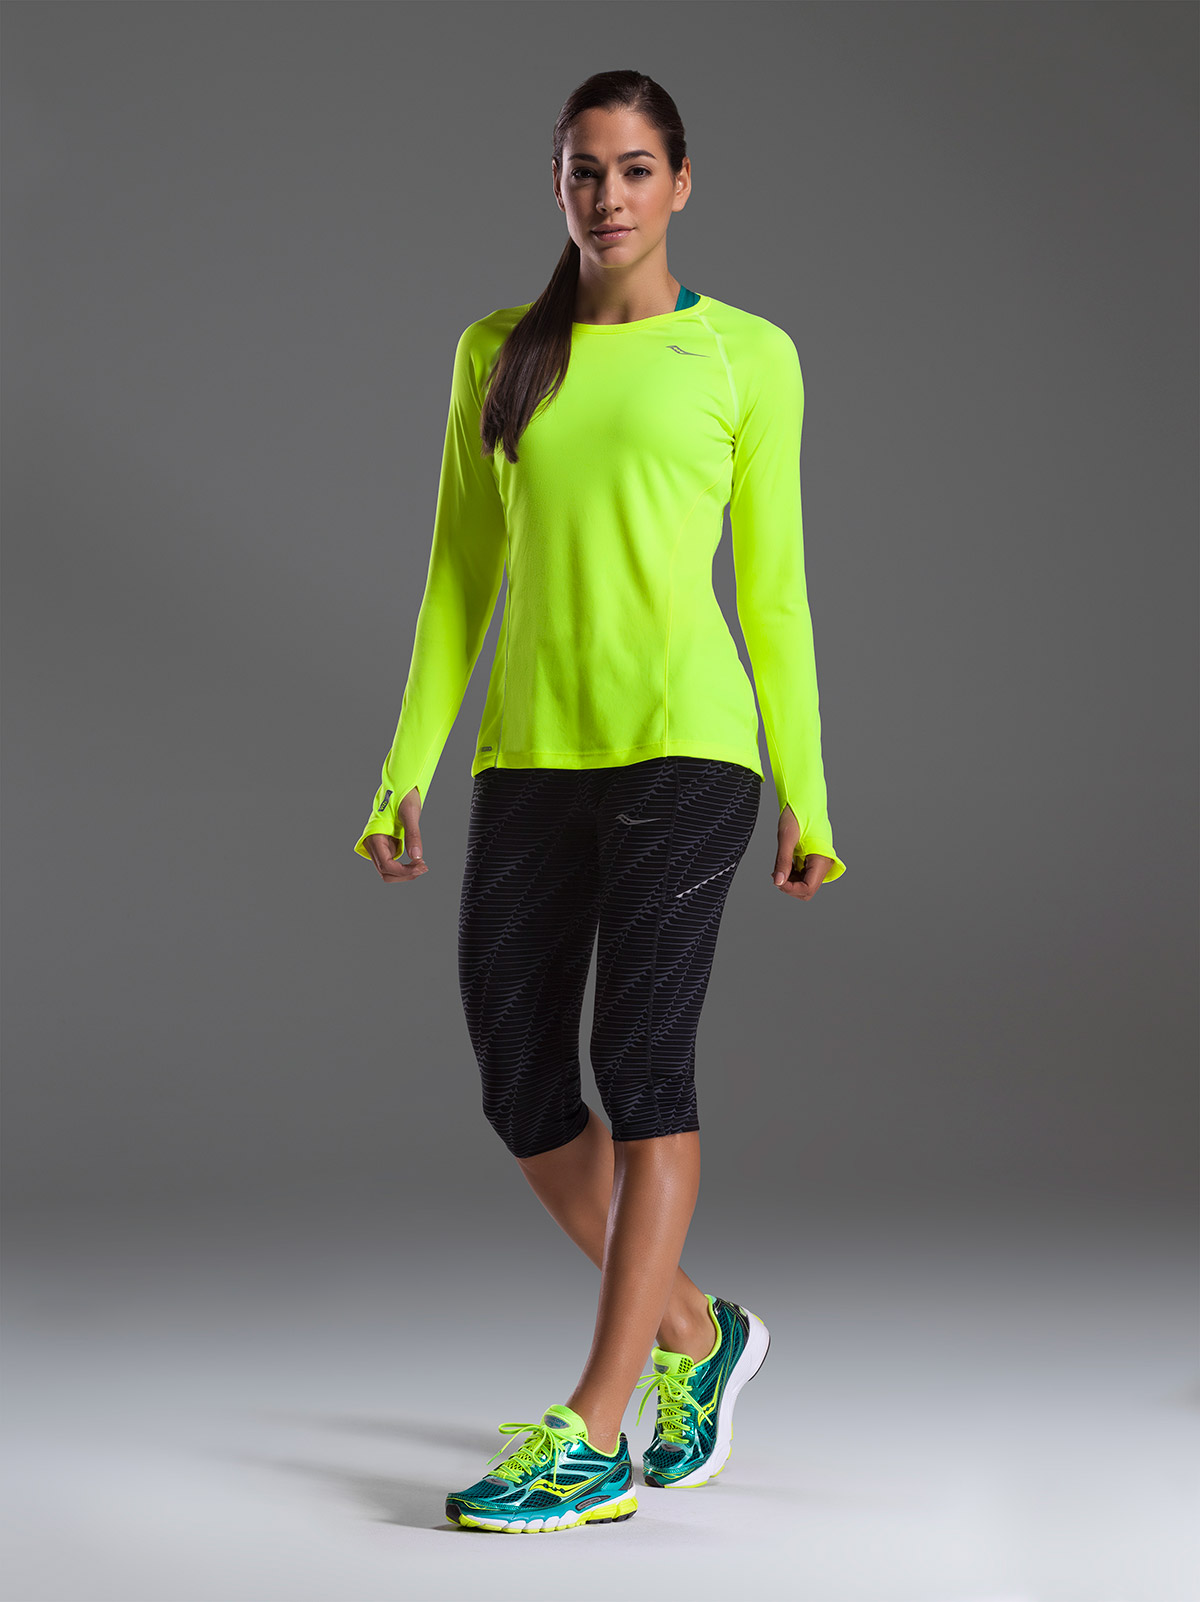 Women's Velocity Long Run Outfit